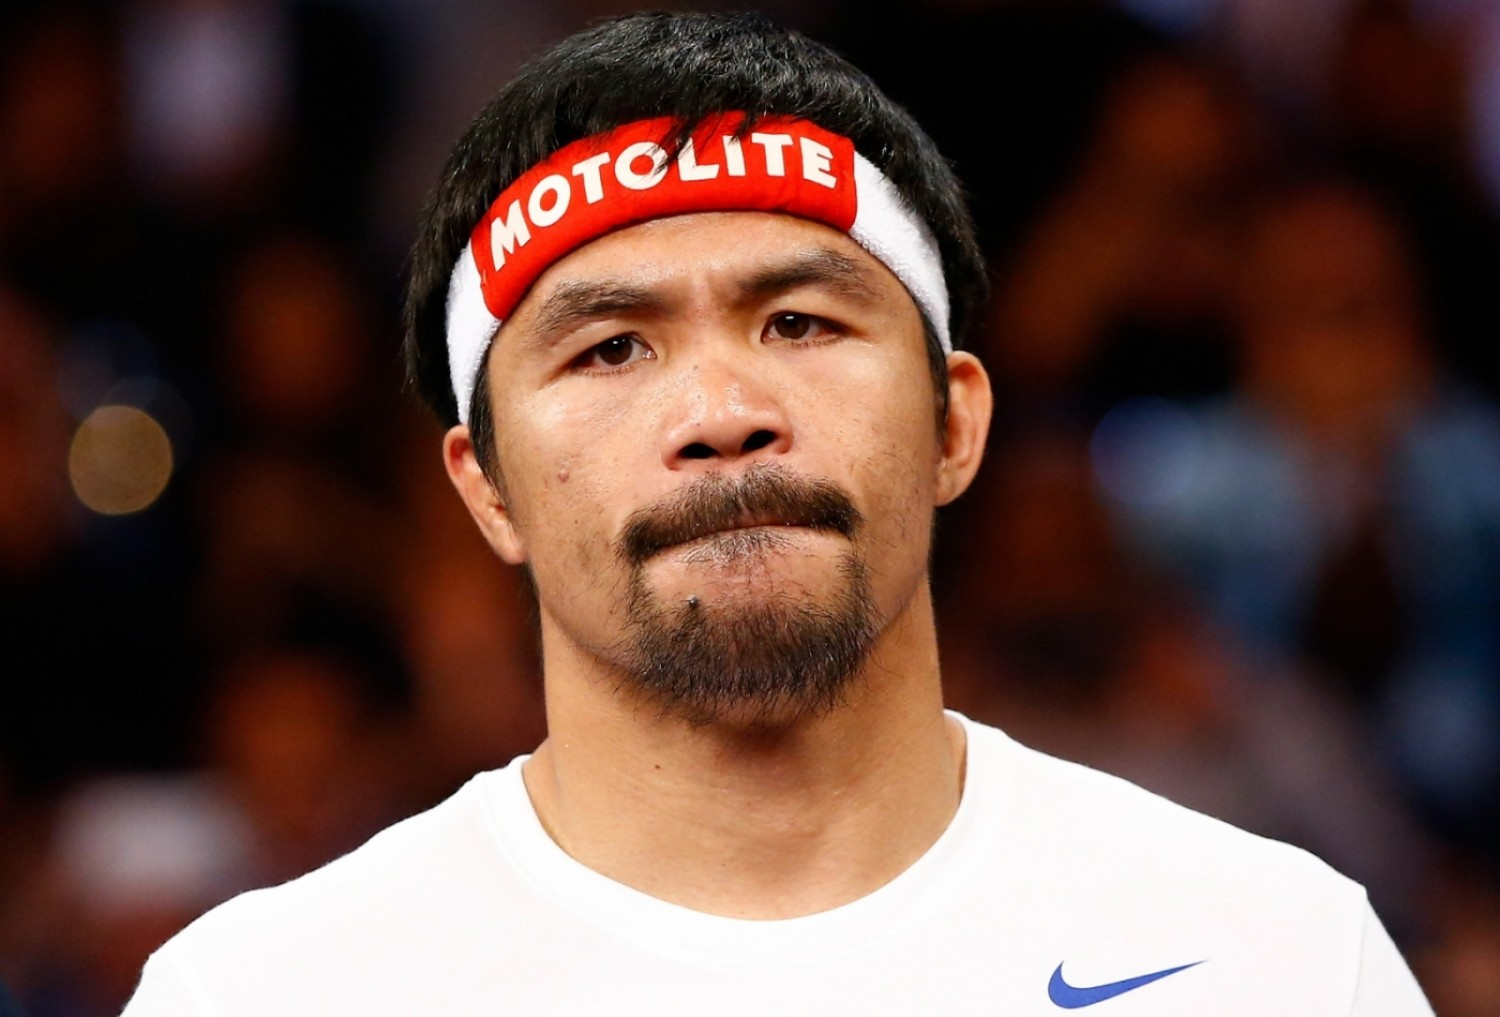 More questions raised about impact of Manny Pacquiaos injury